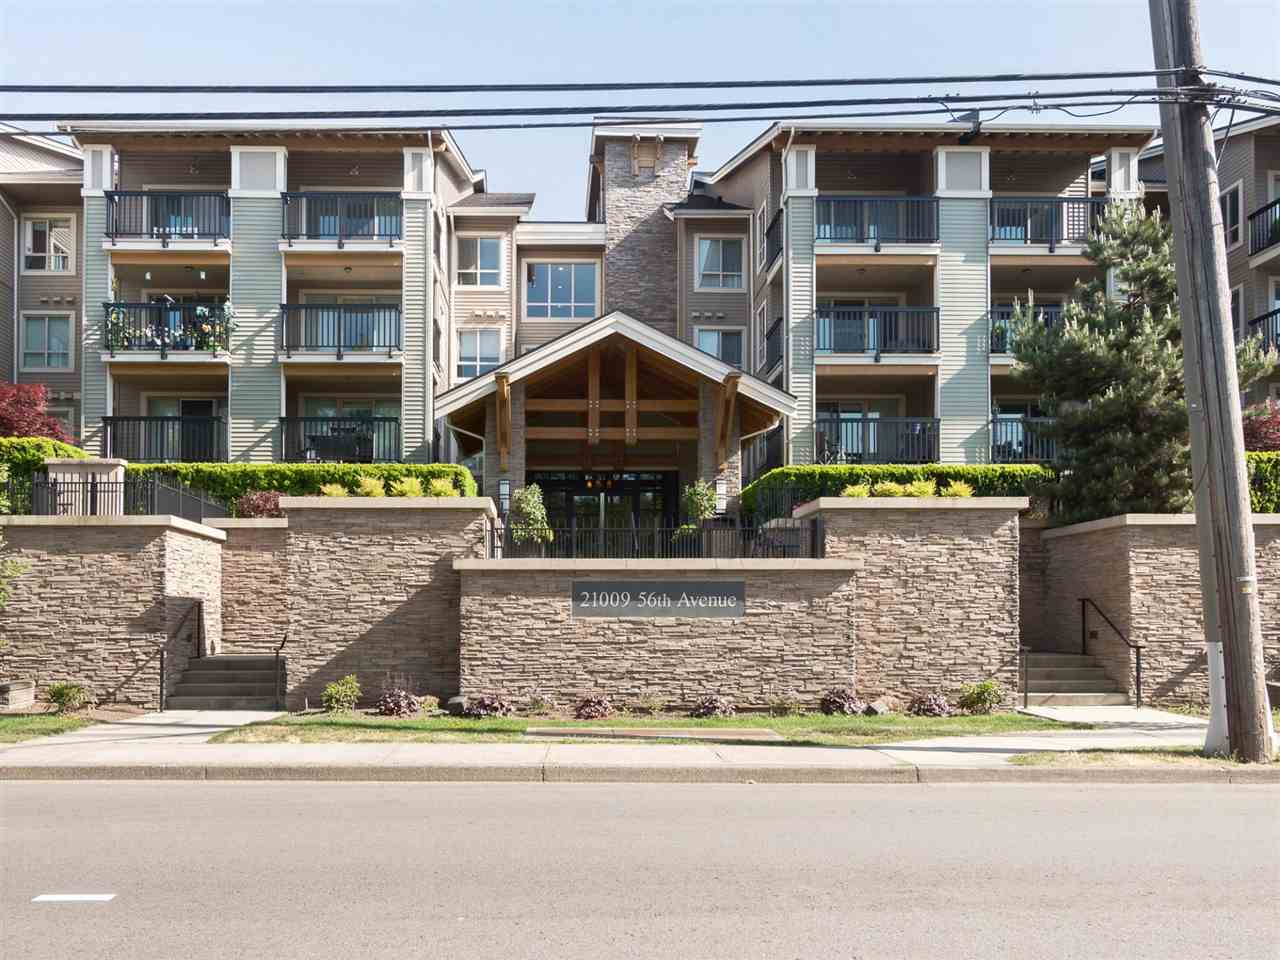 312 21009 56 AVENUE, 2 bed, 2 bath, at $434,998